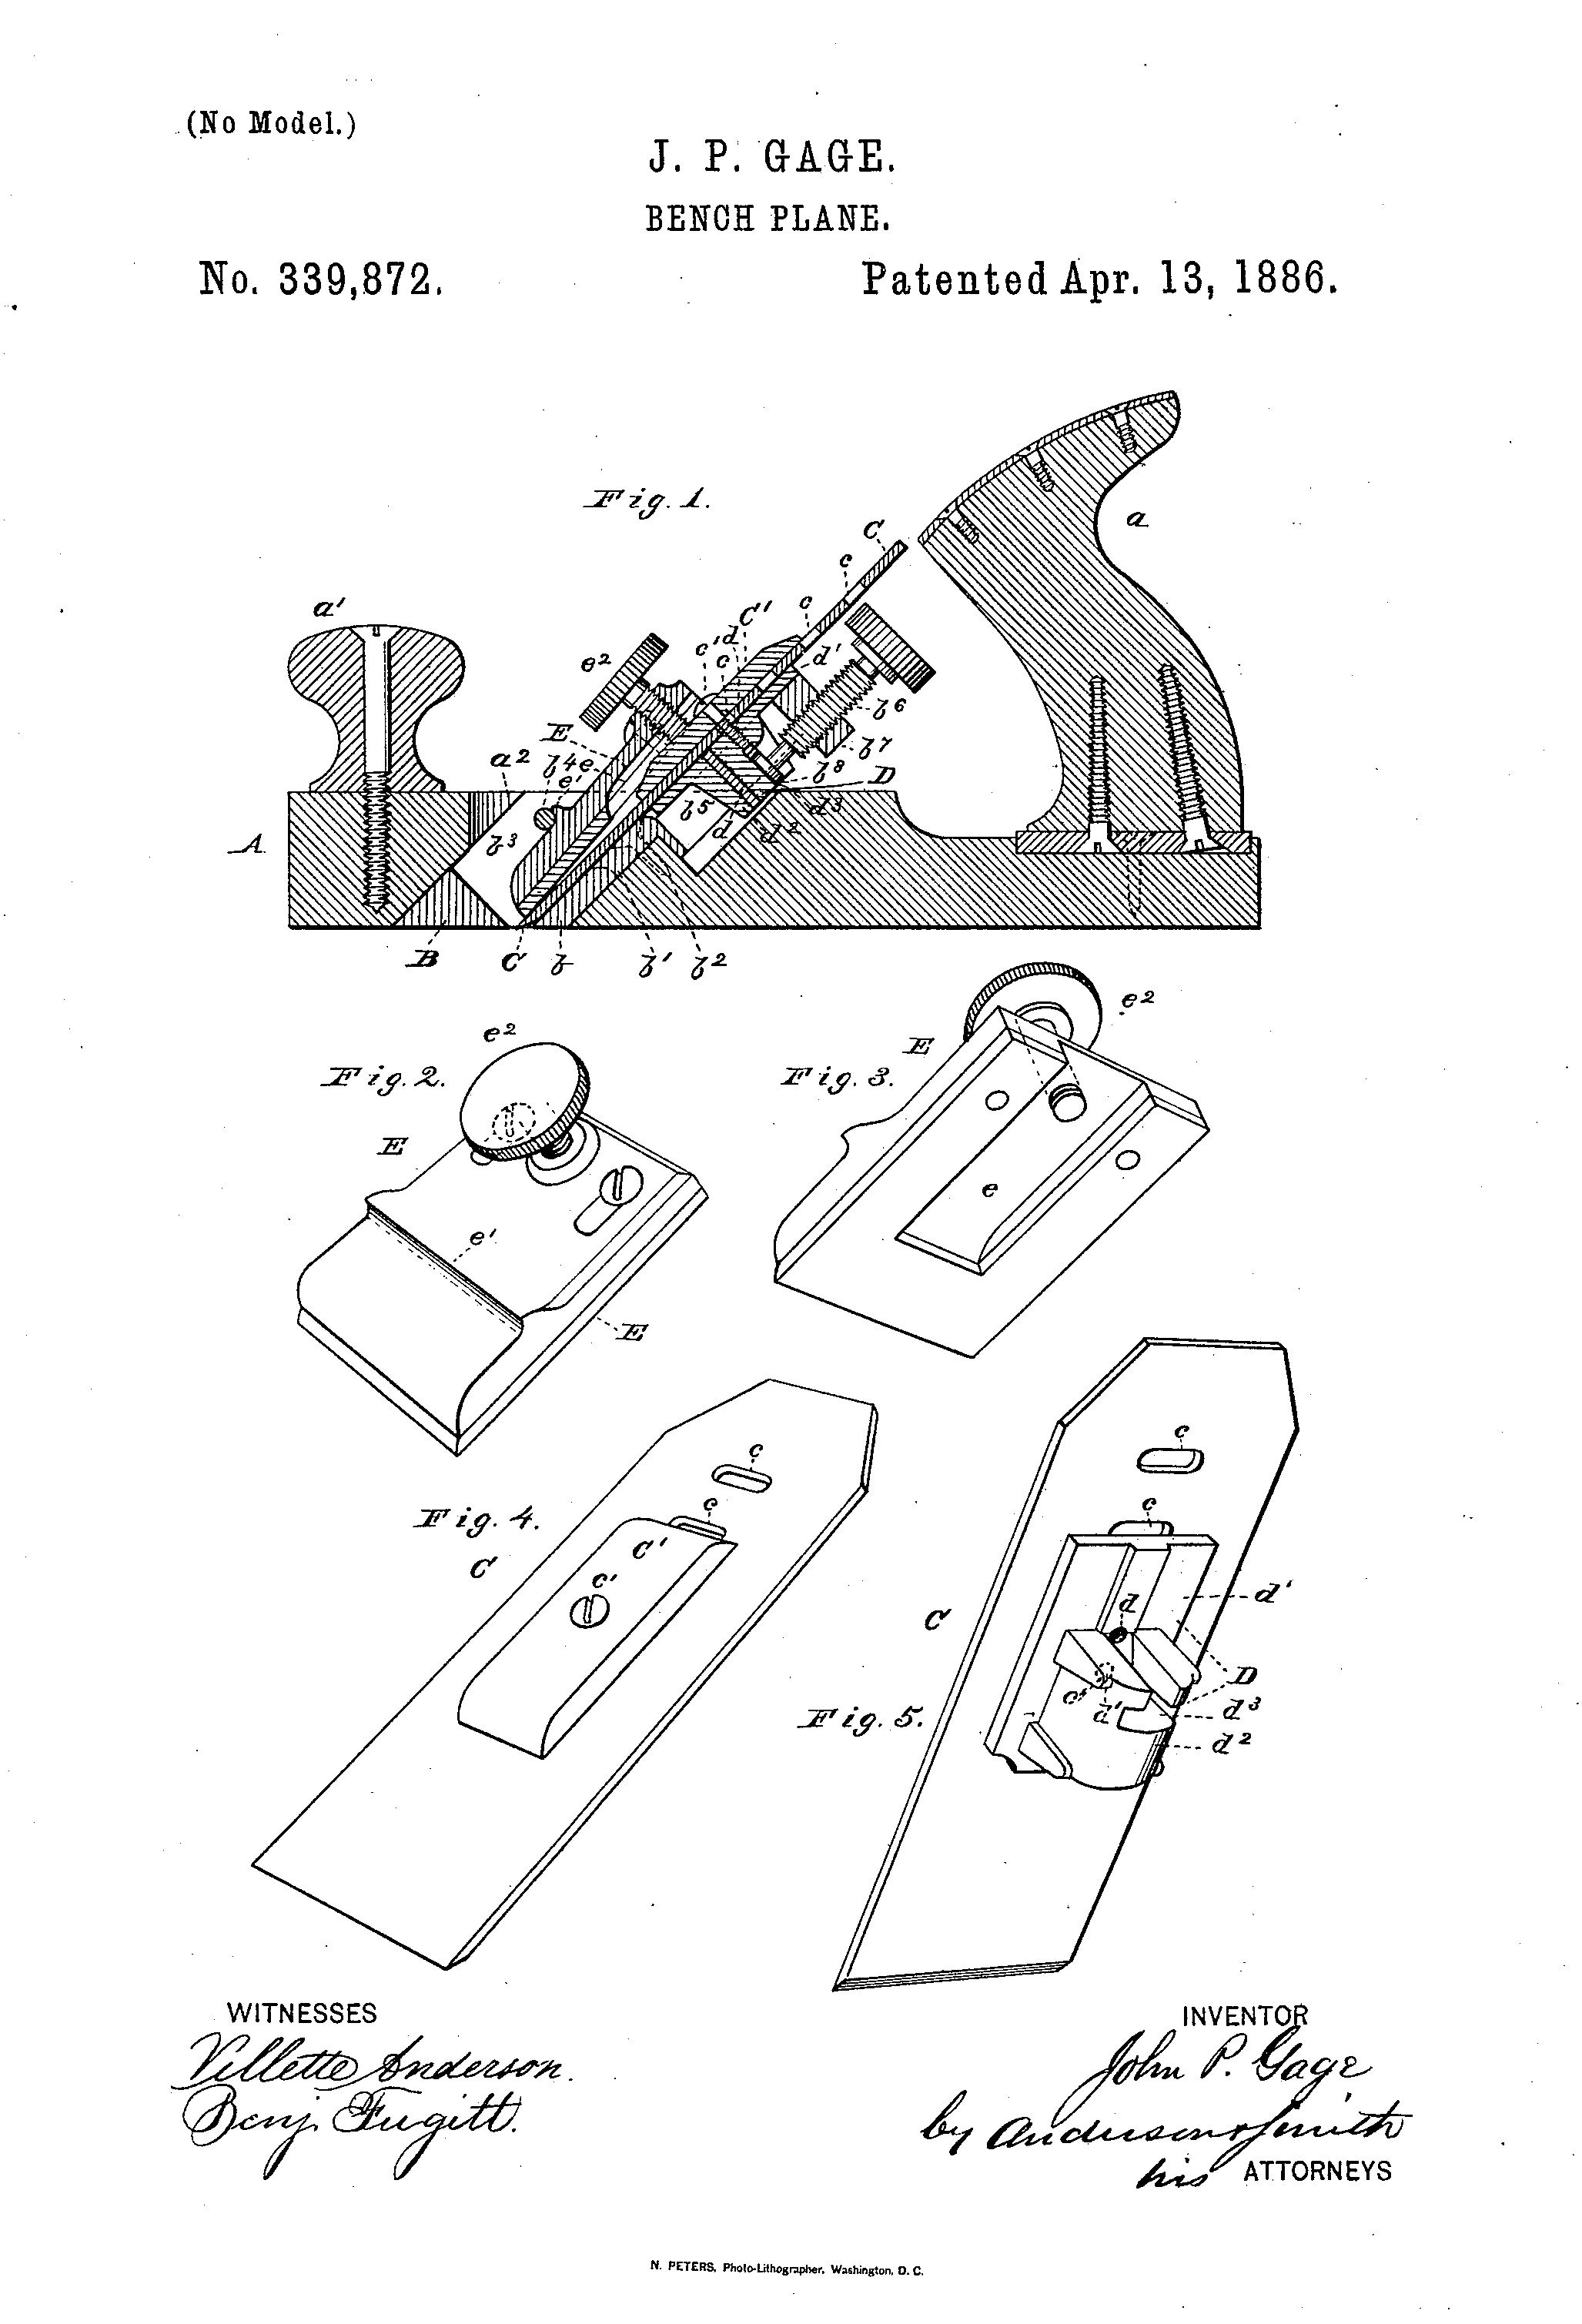 Us339872 Gage Patent Stanley Gage Planes Woodworking